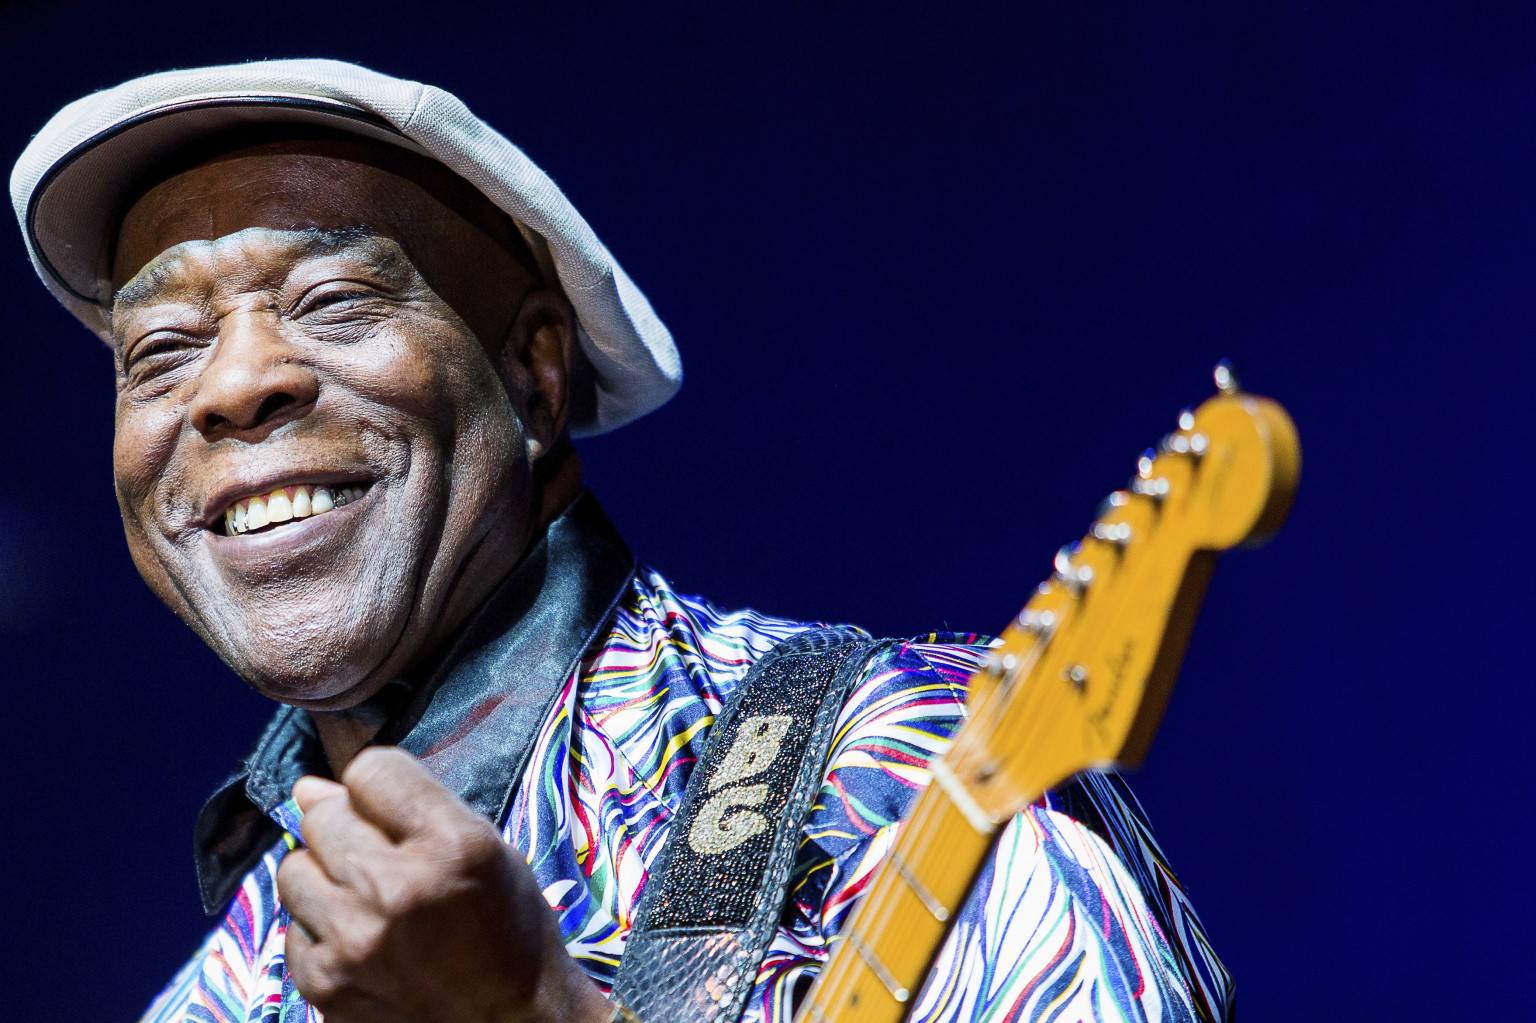 Buddy Guy in the Hunter Valley at Roche Estate as part of Blues in the Vine 10 February 2018